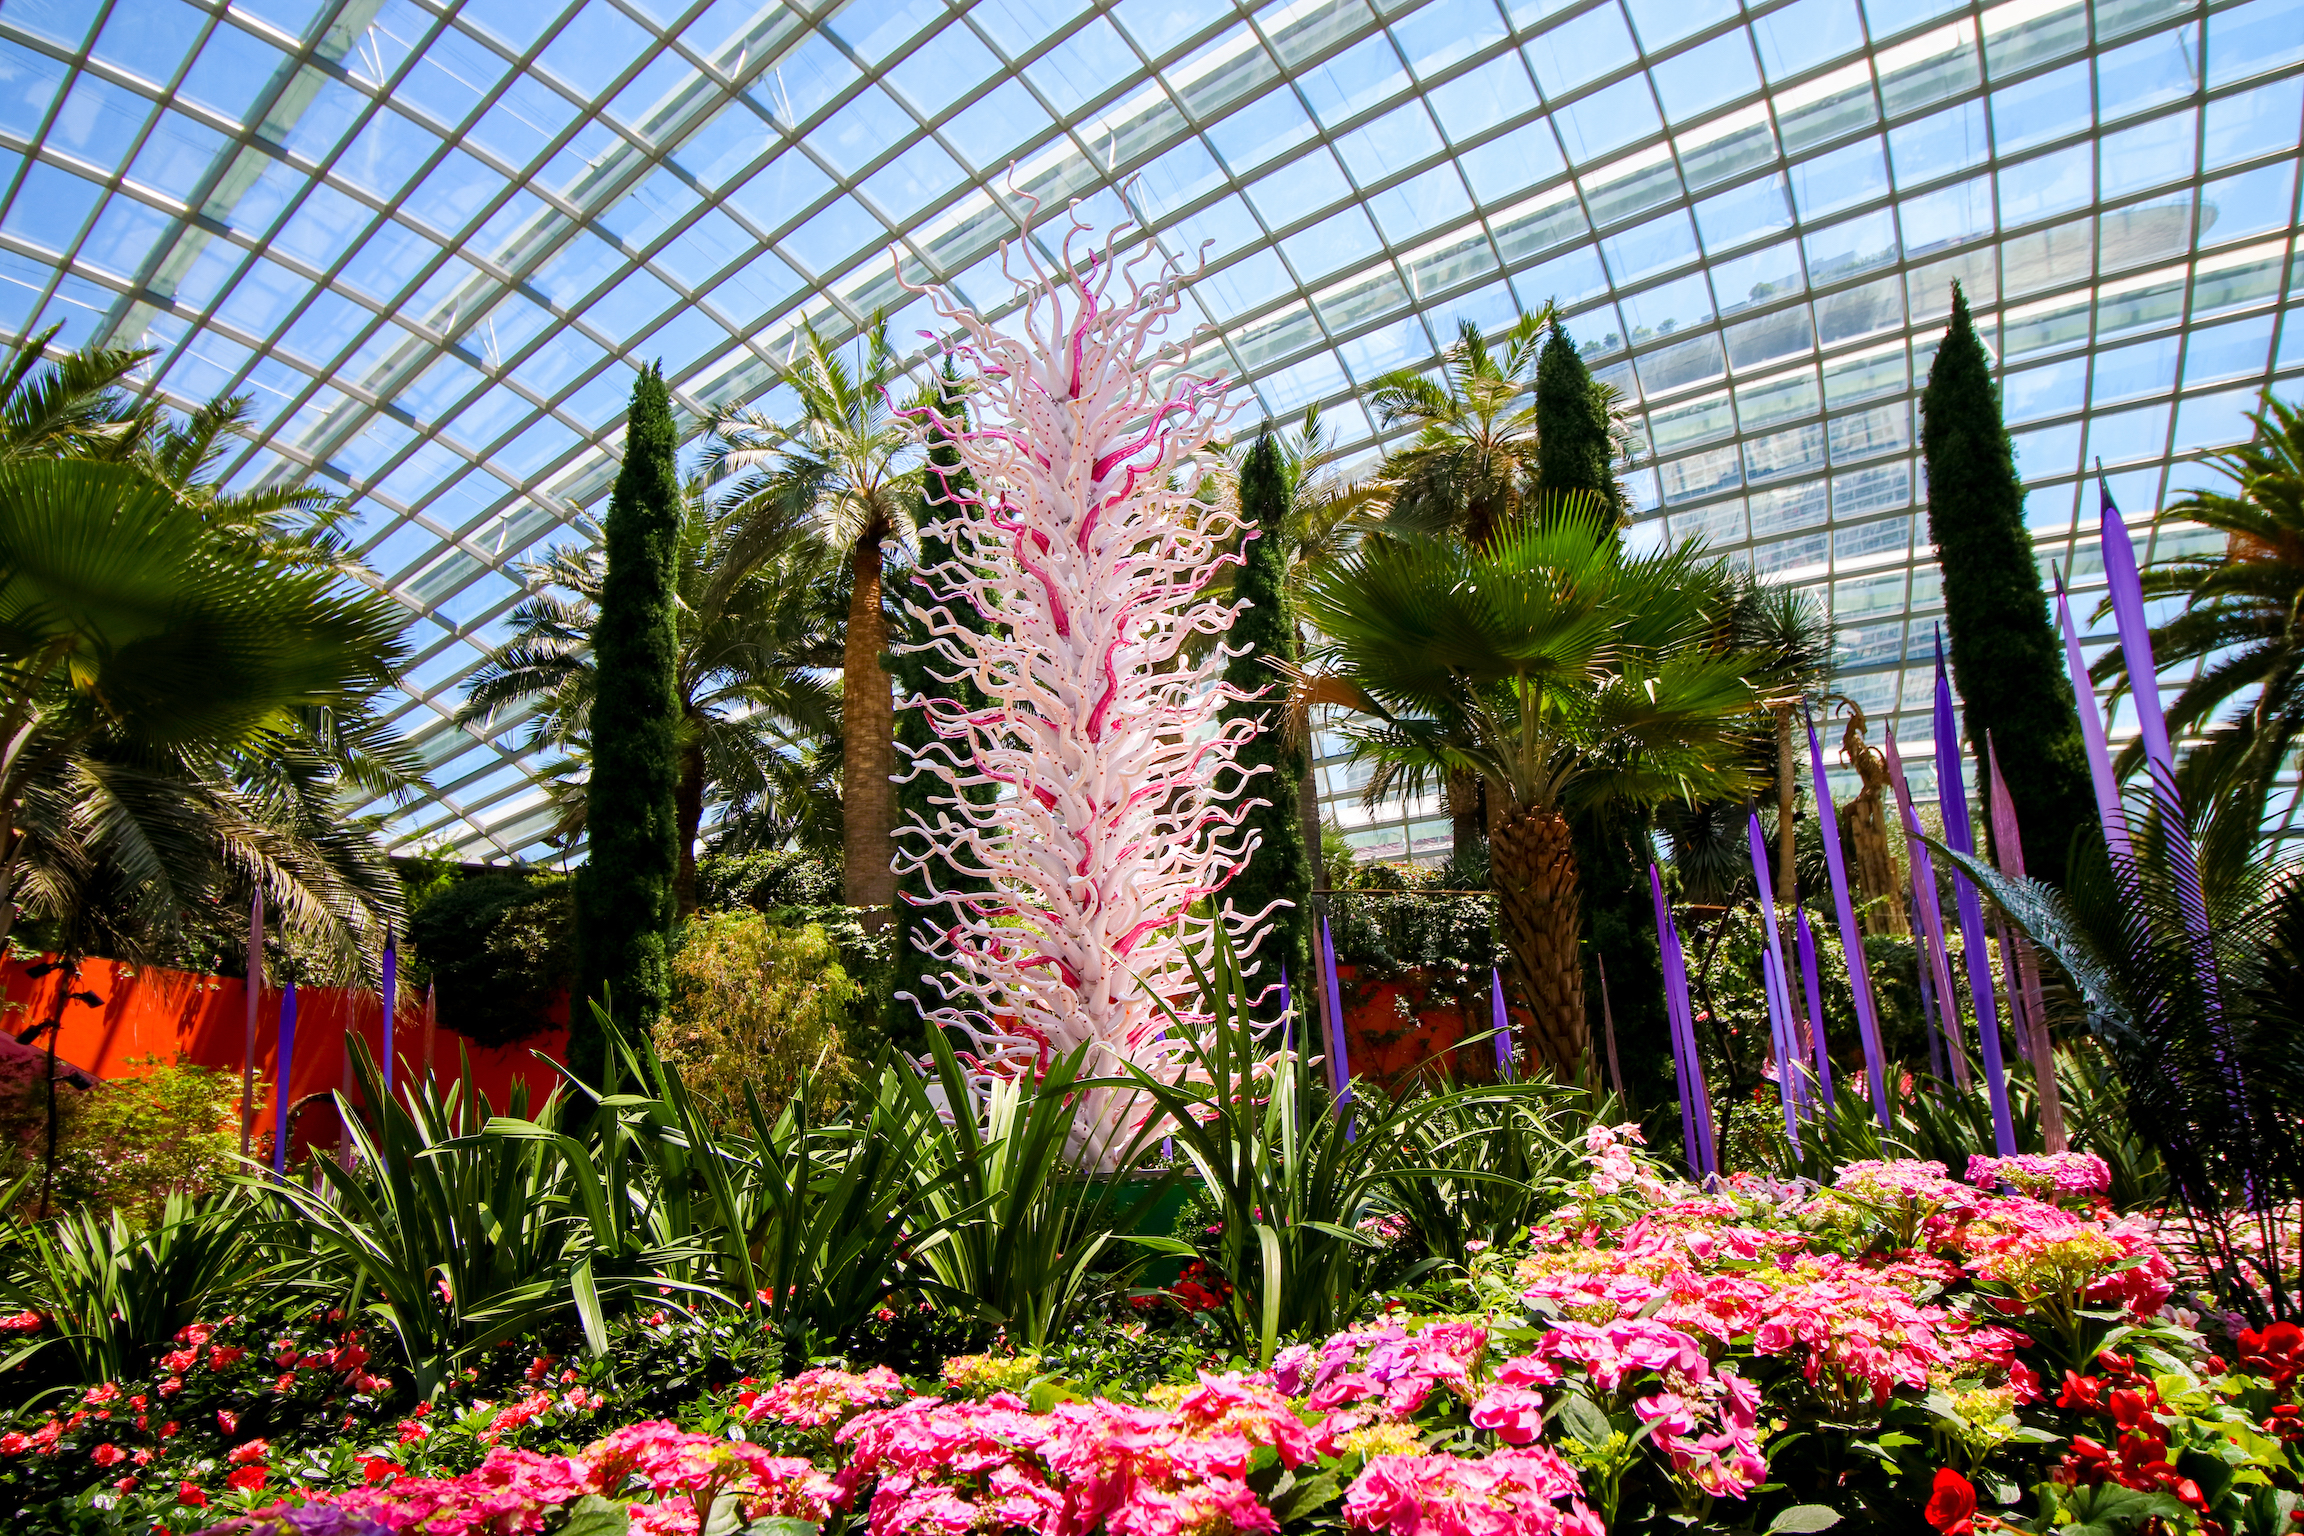 Dale Chihuly: Glass in Bloom